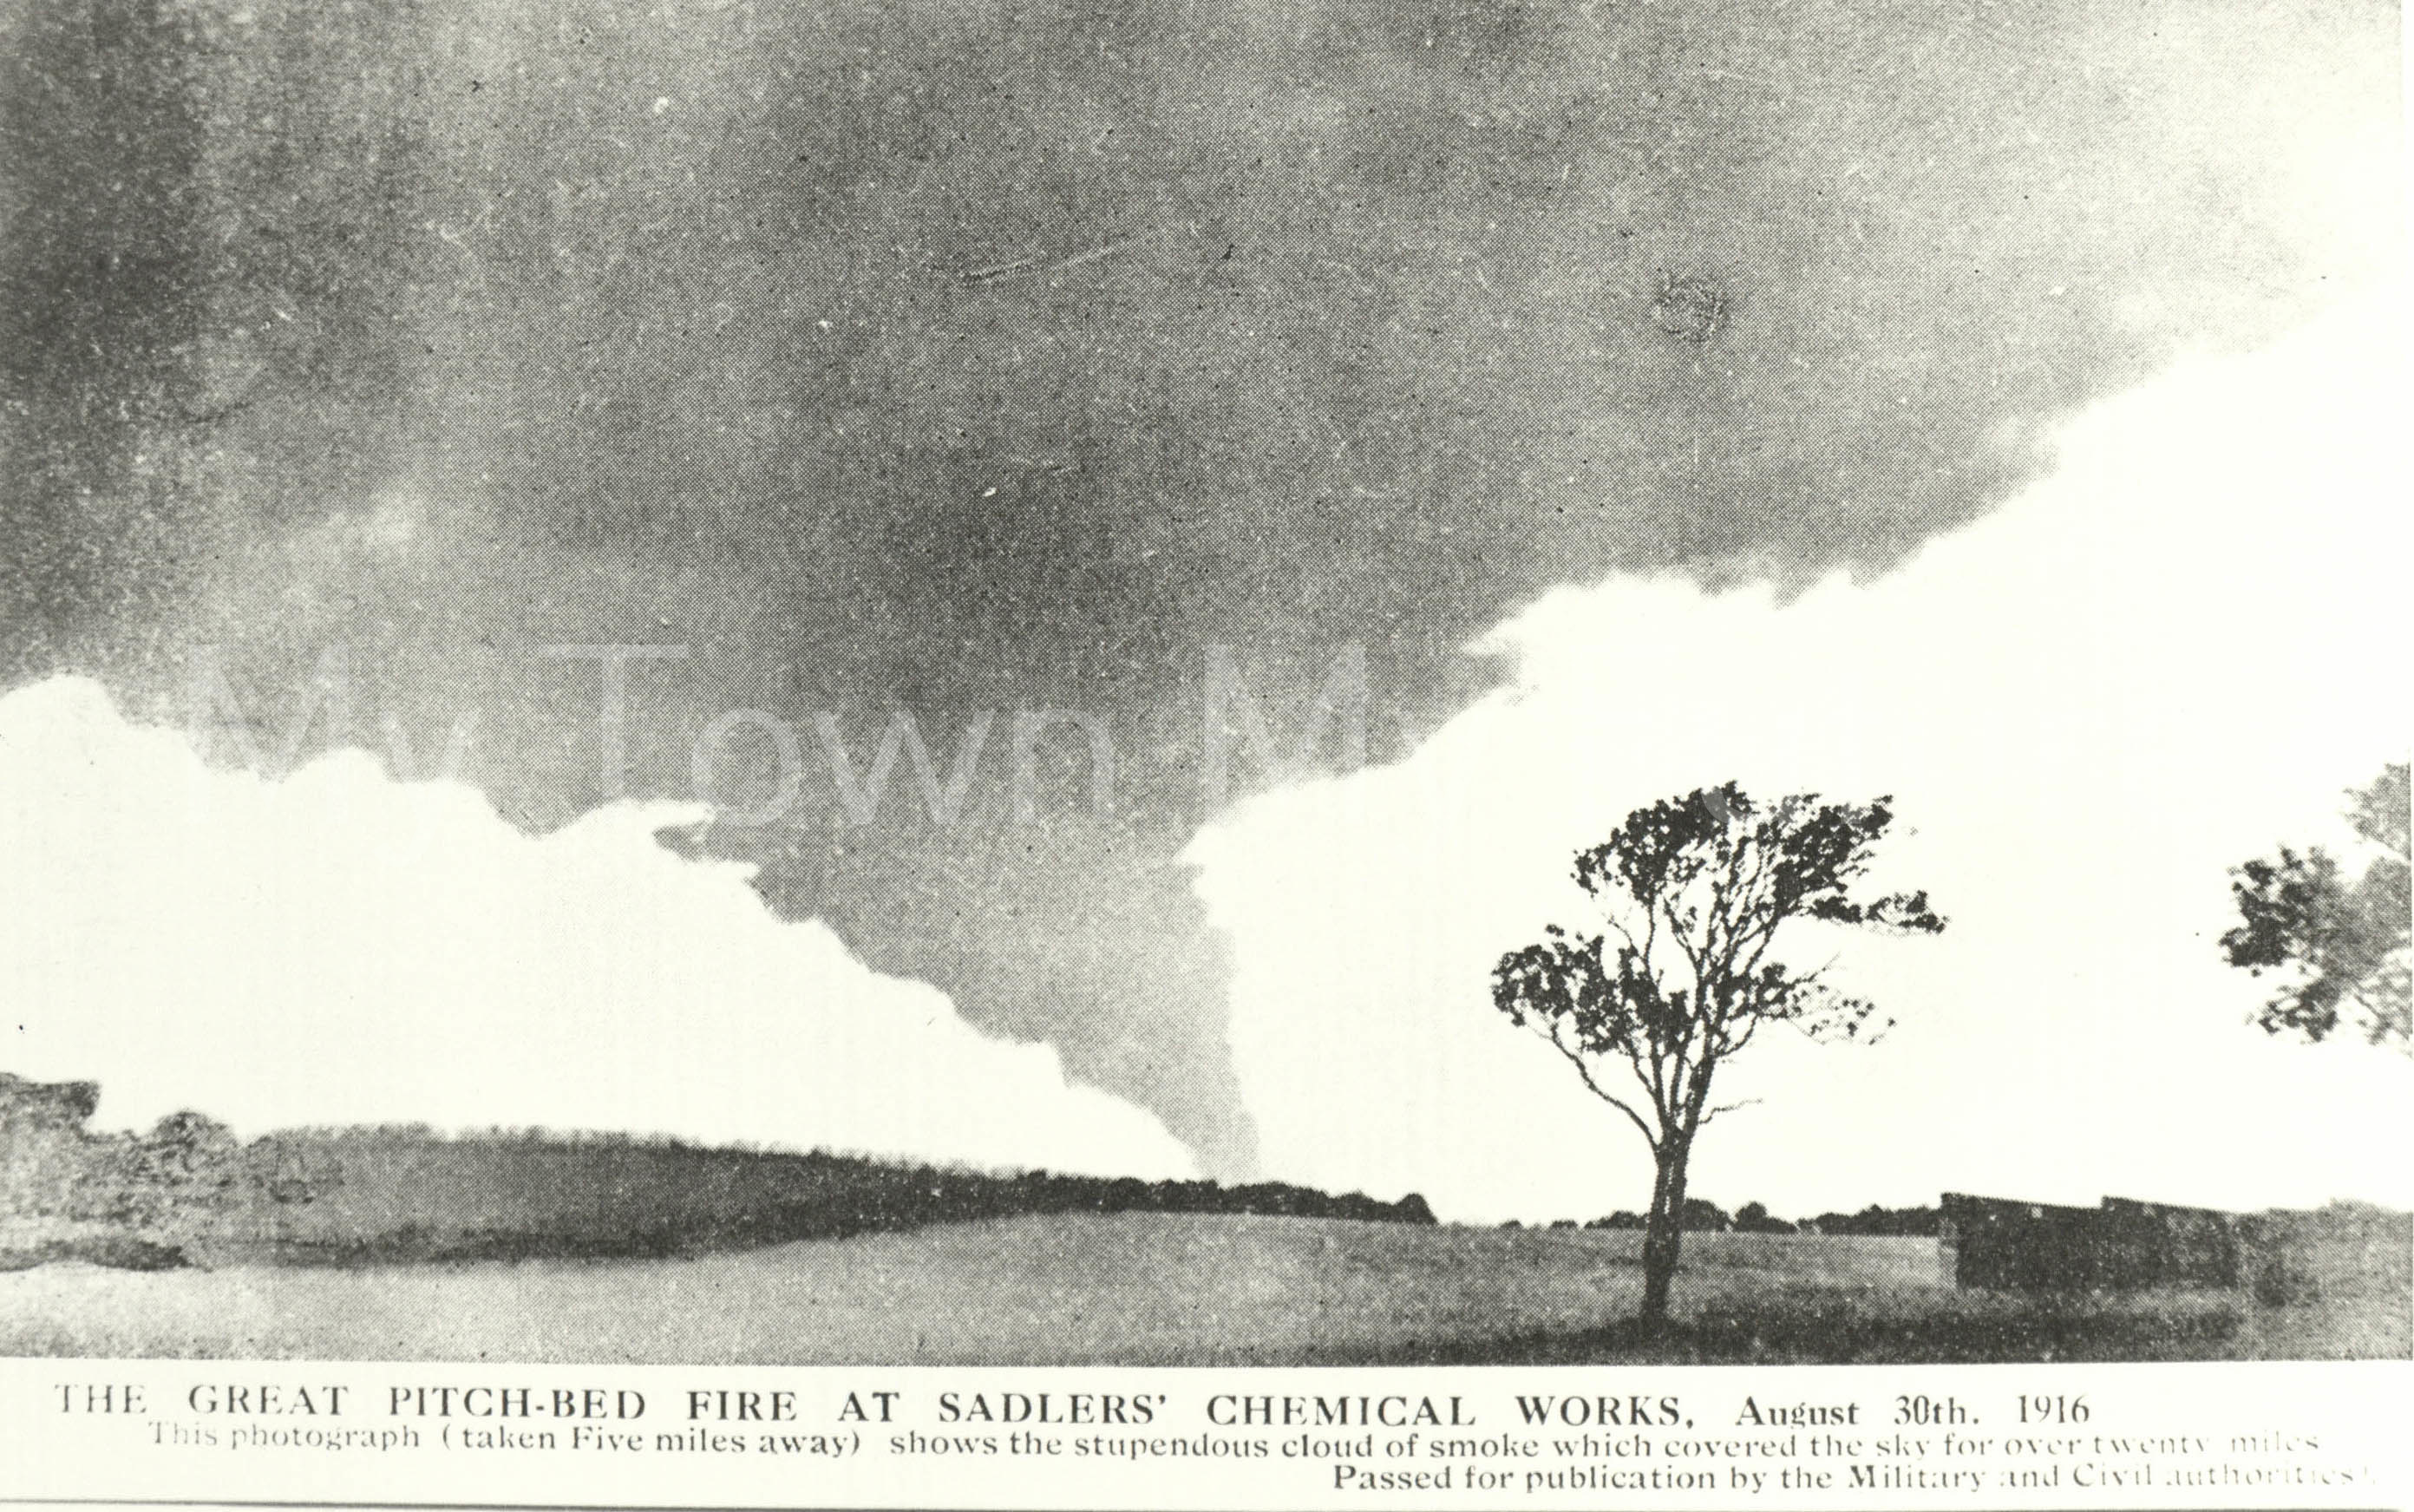 Sadlers Chemical Works Fire 30th August 1916